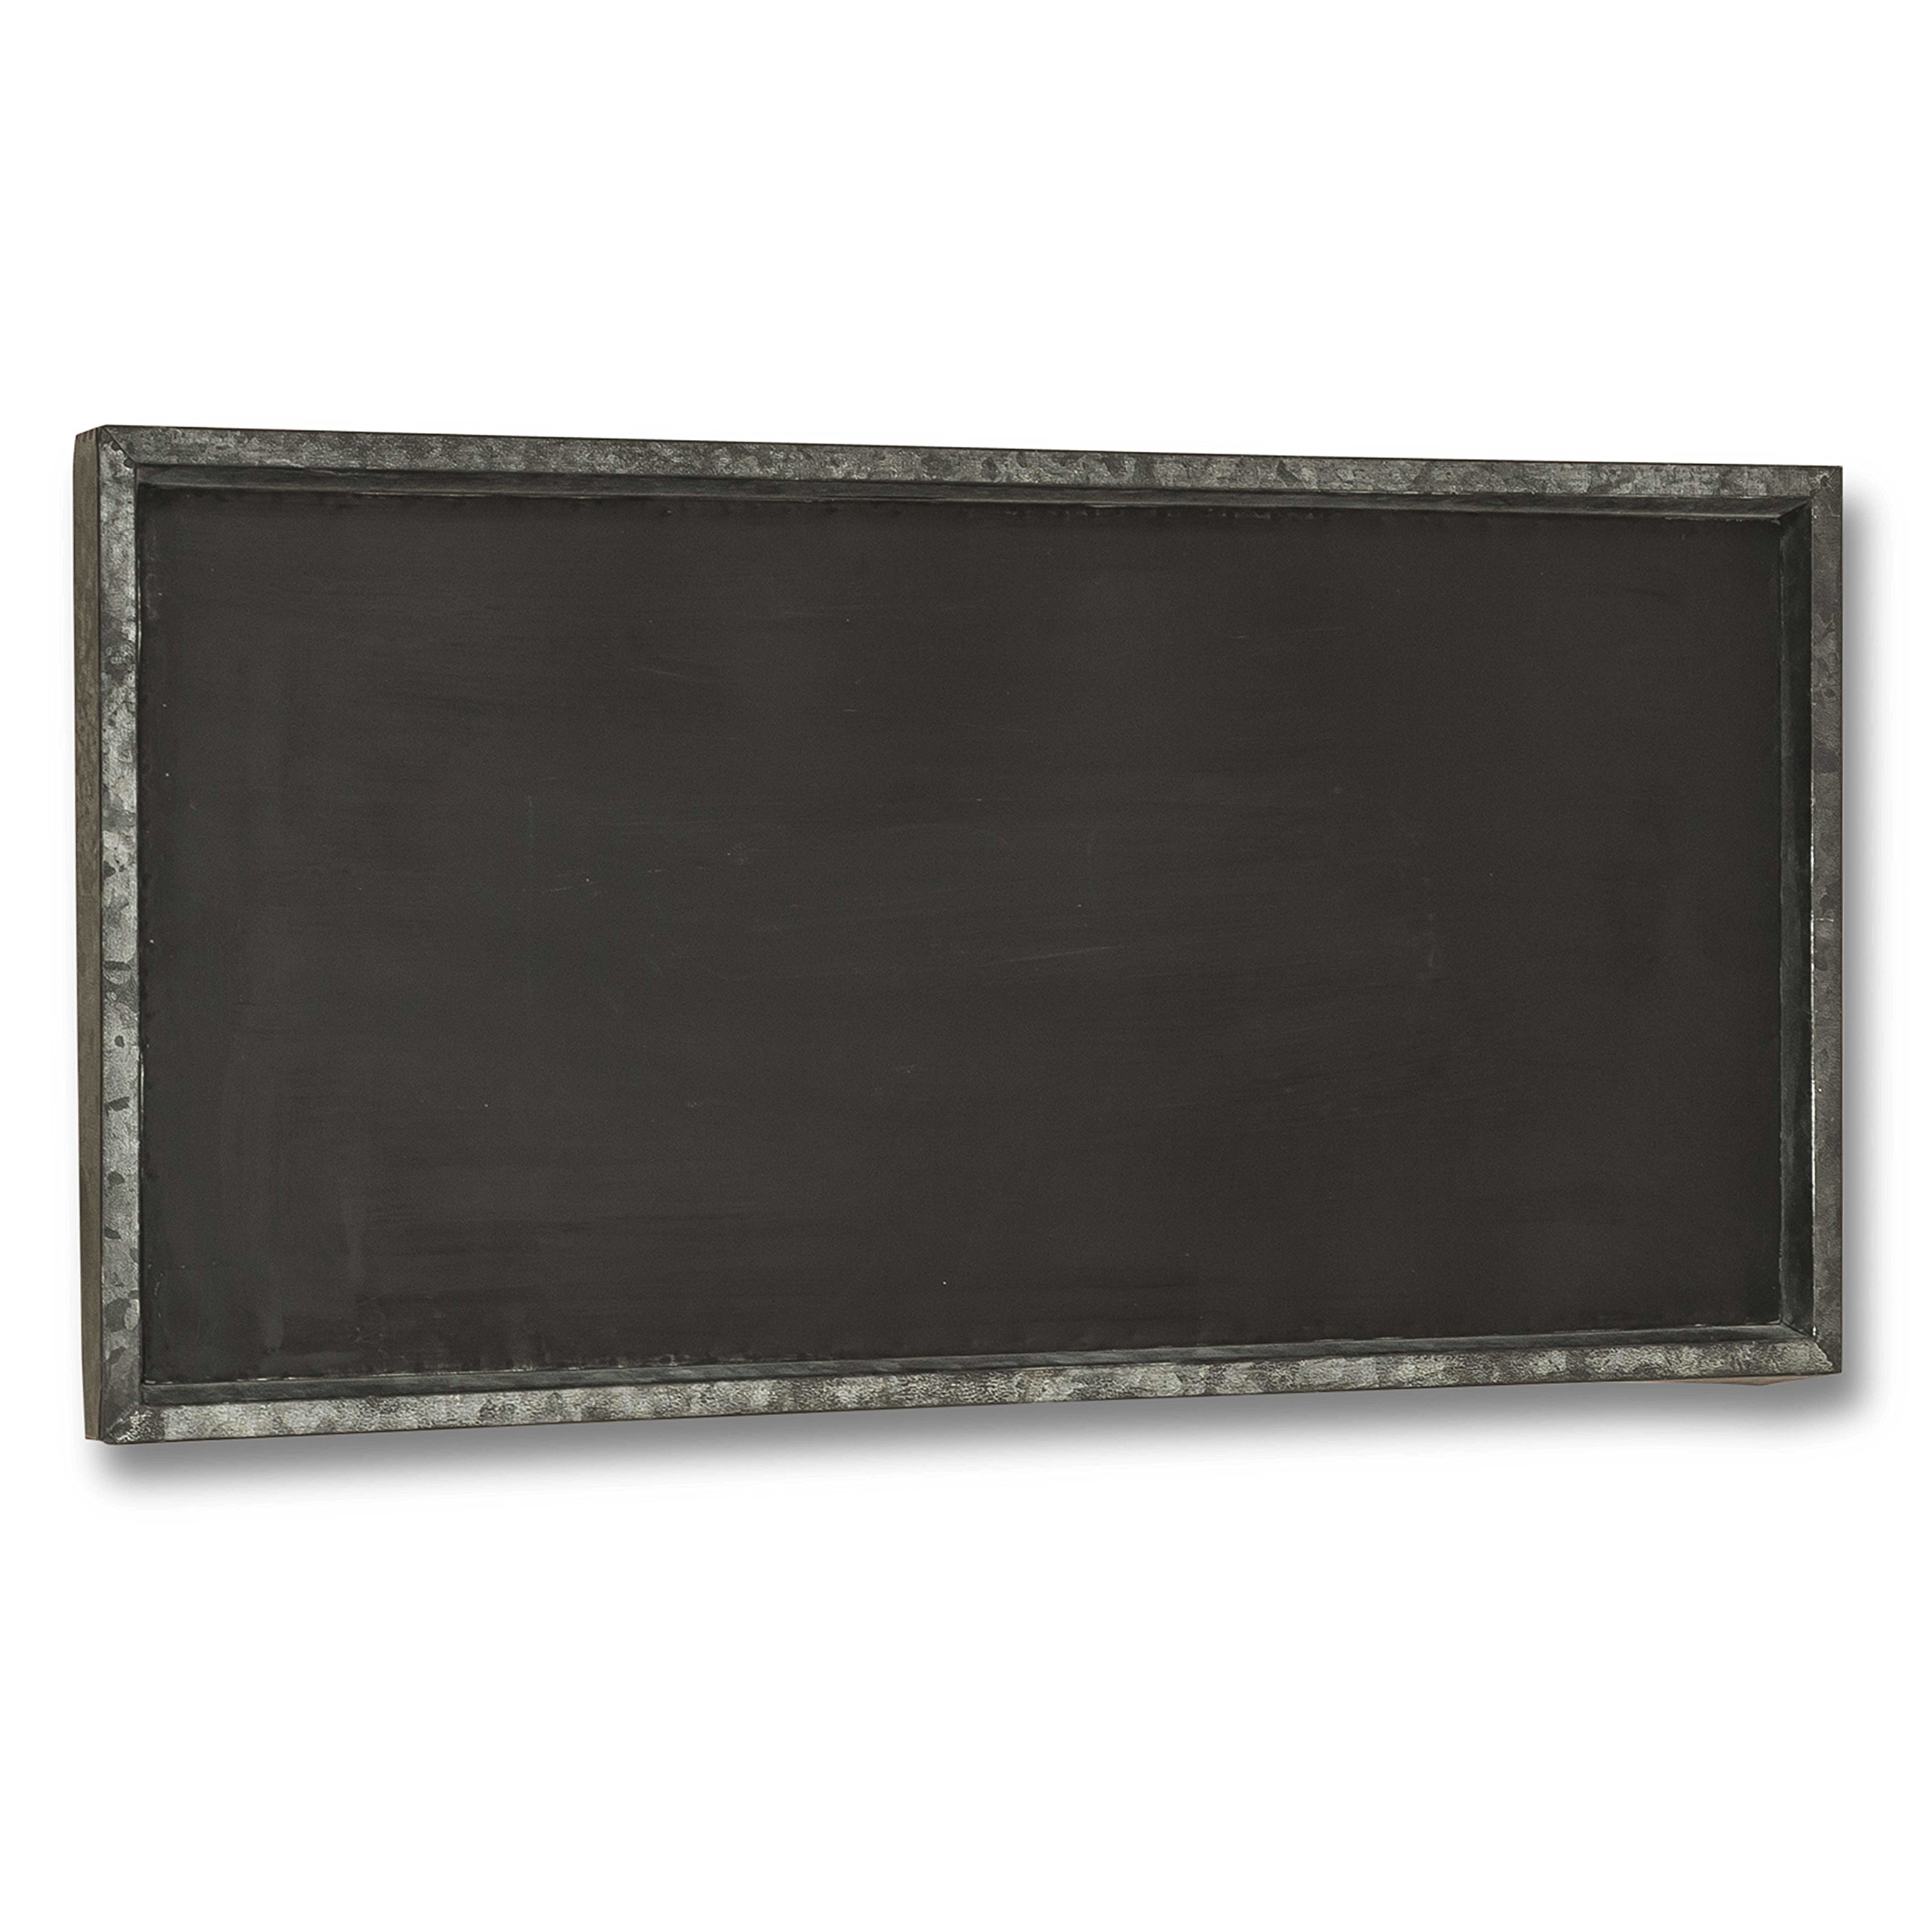 Rustic Galvanized Zinc Framed Magnetic Wall Chalkboard, Large Size Over 2 1/2 Feet, (15 x 29 1/2 Inches) Vertical or Horizontal Hanging Options, Great for Kitchen, Weddings, Restaurant Menus, and More by WHW Whole House Worlds